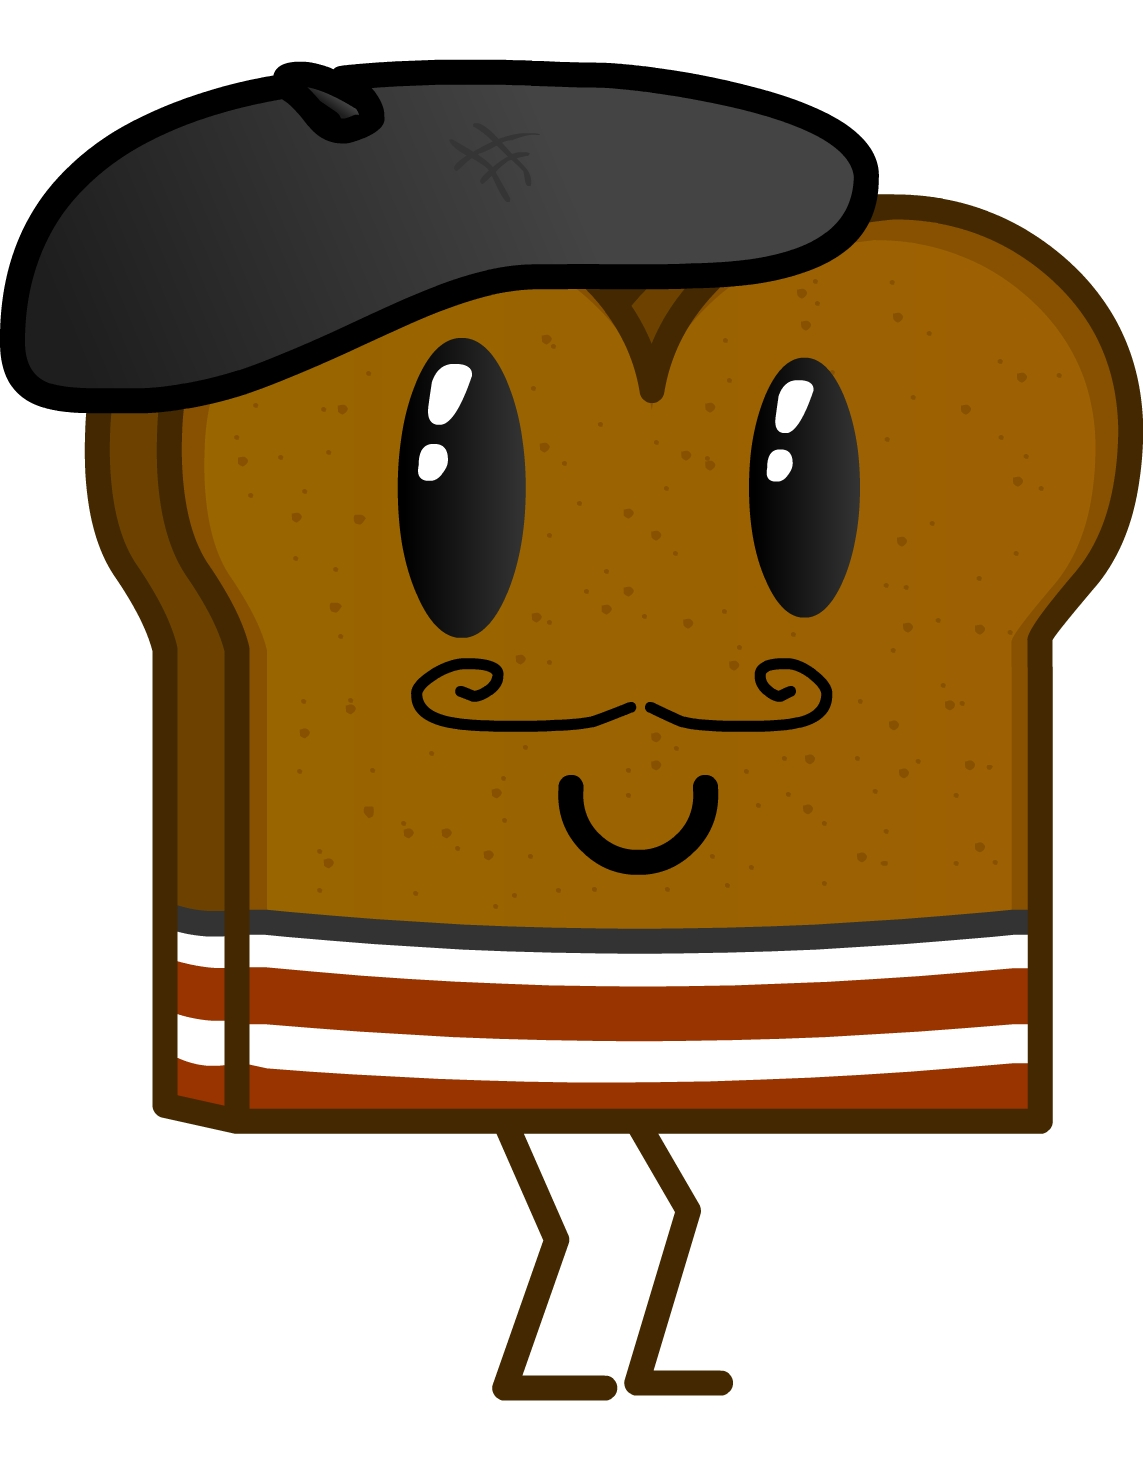 Free French Toast Cliparts, Download Free Clip Art, Free Clip Art on.